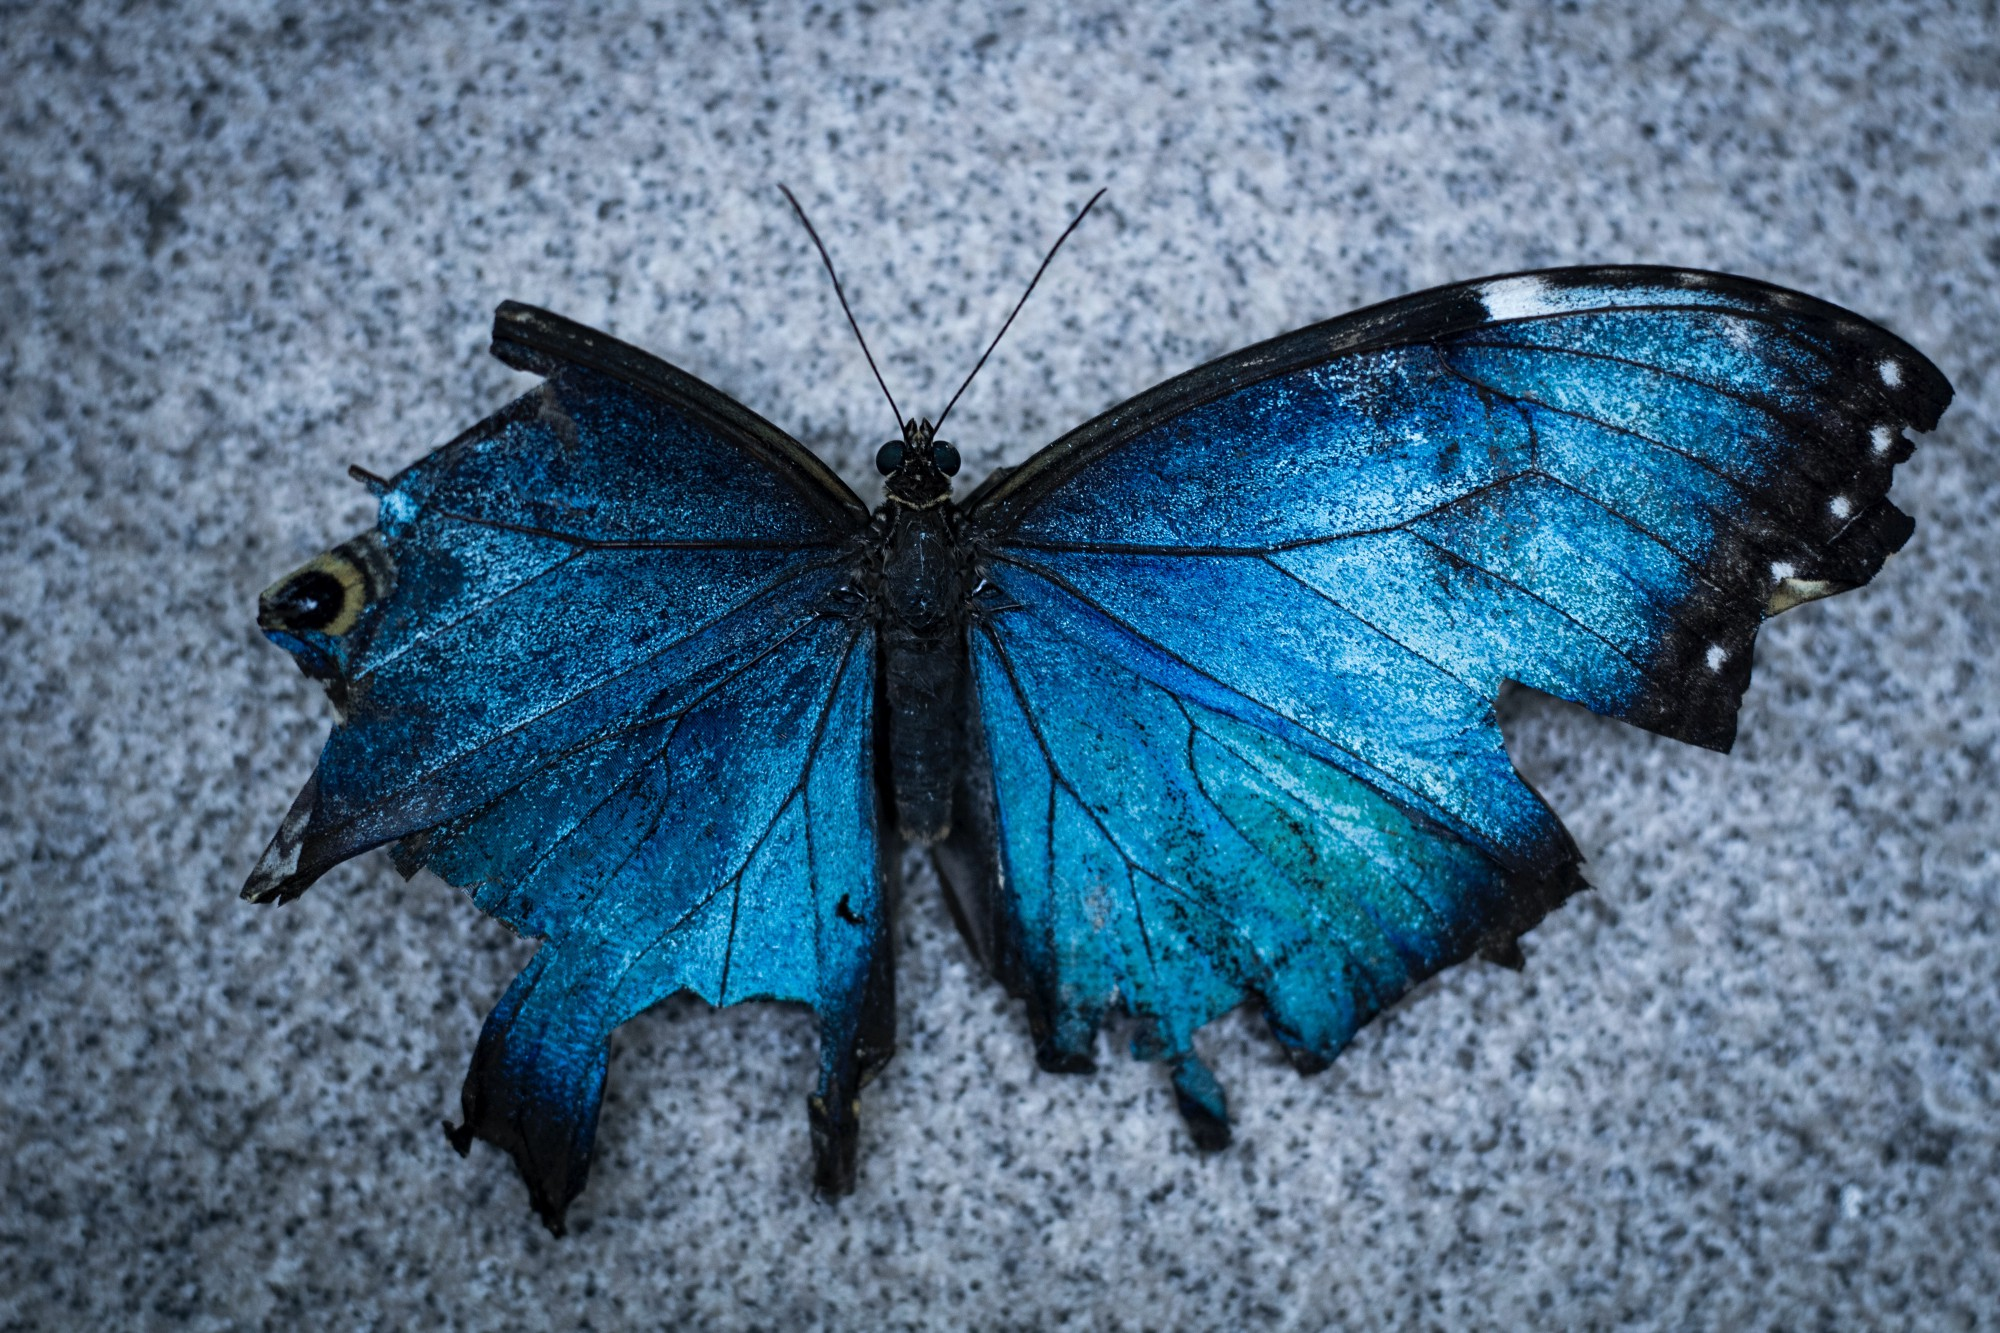 Picture of a tattered blue and black butterfly reminiscent of a starry night sky